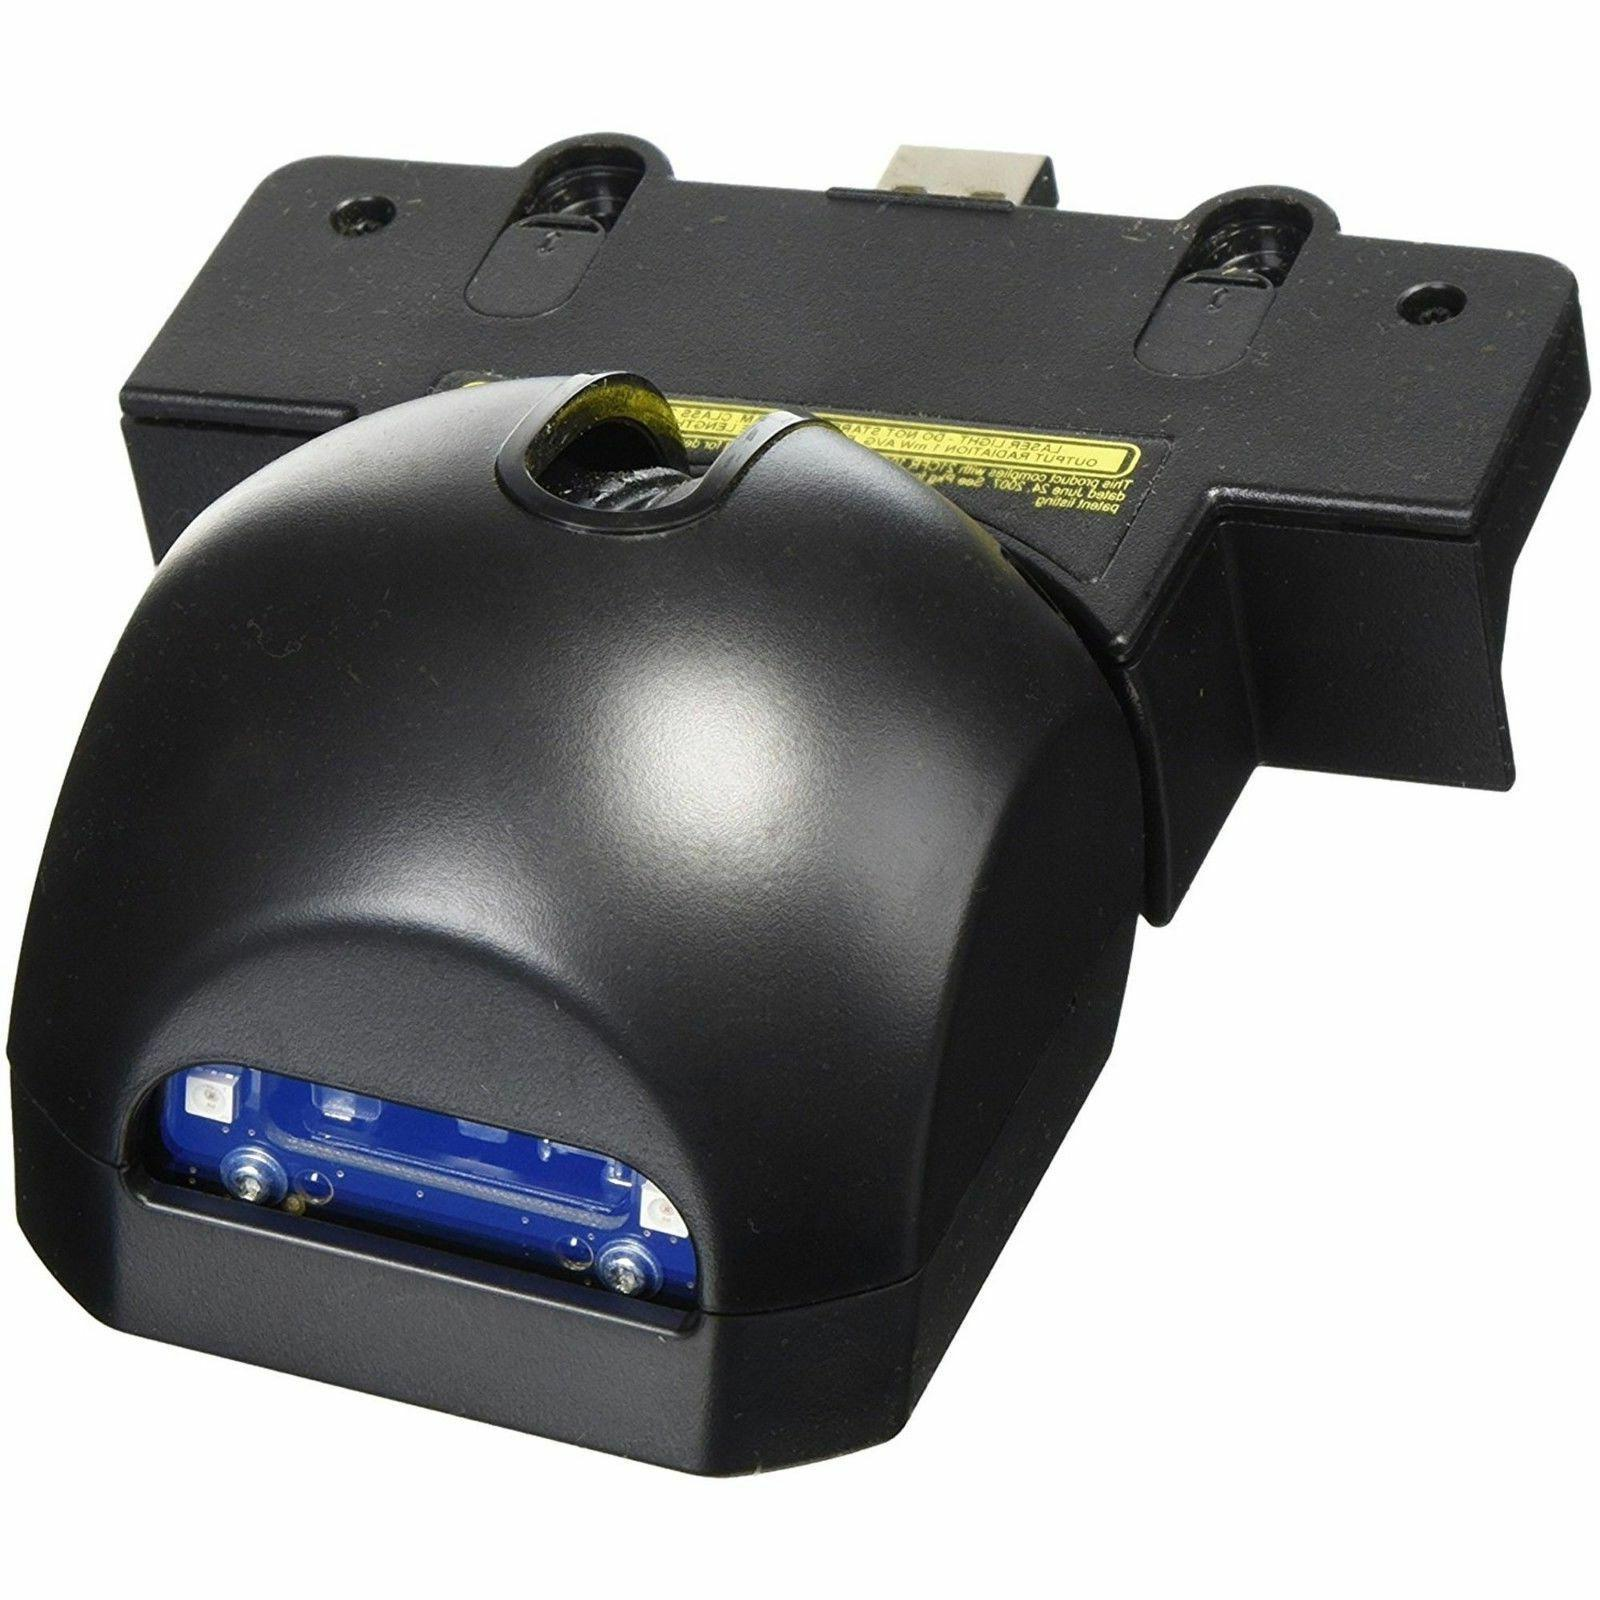 retail integrated barcode scanner new 4430i 728725